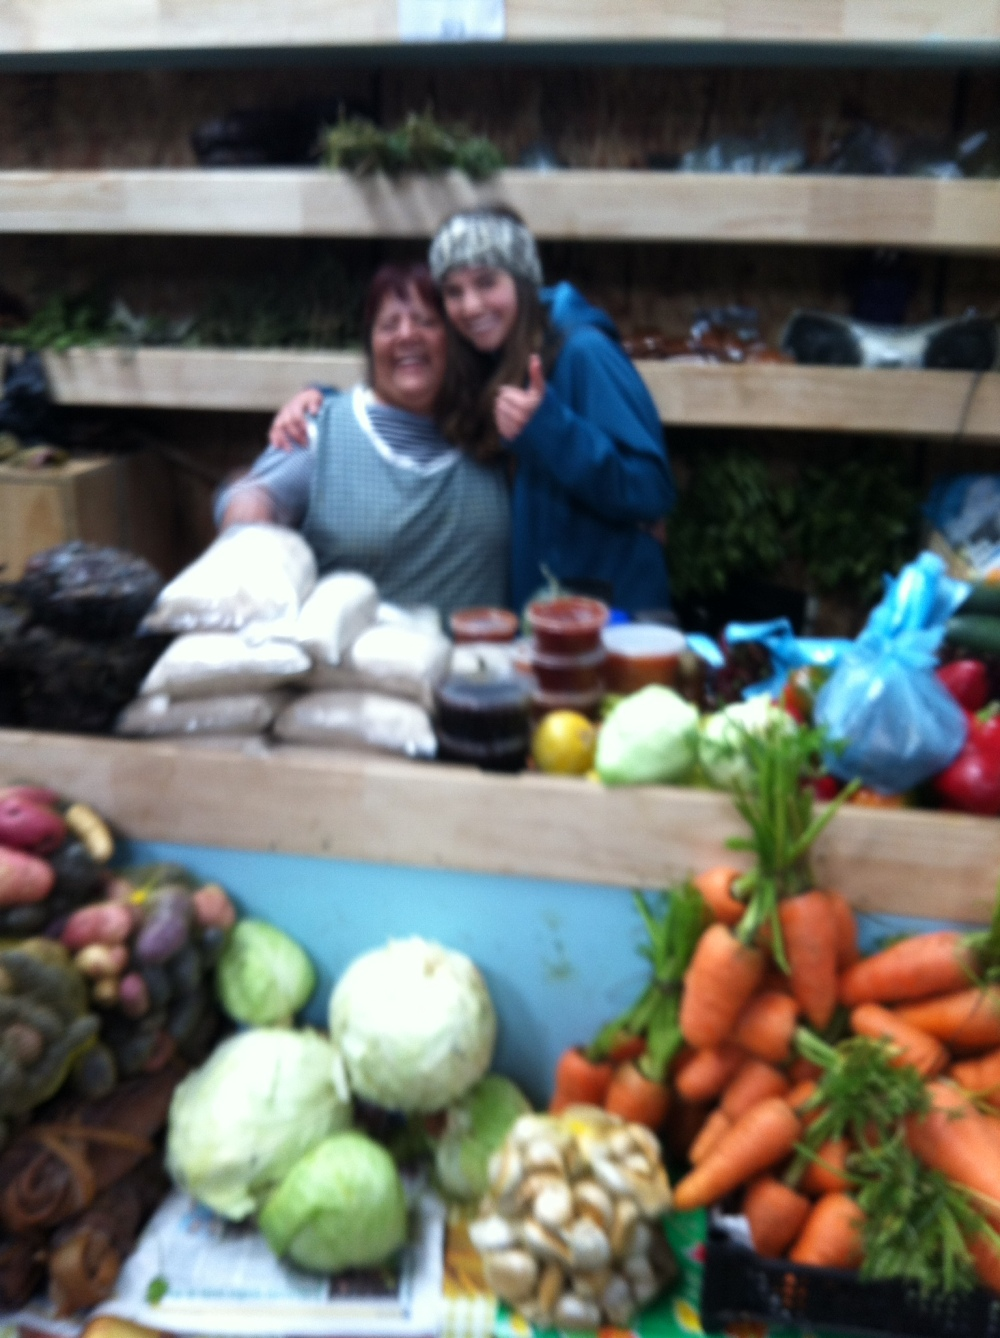 Blury selfie of the Chilote woman and myself as we bonded over selling fresh vegetables and a love of the rain. We both agree: it does have a smell.